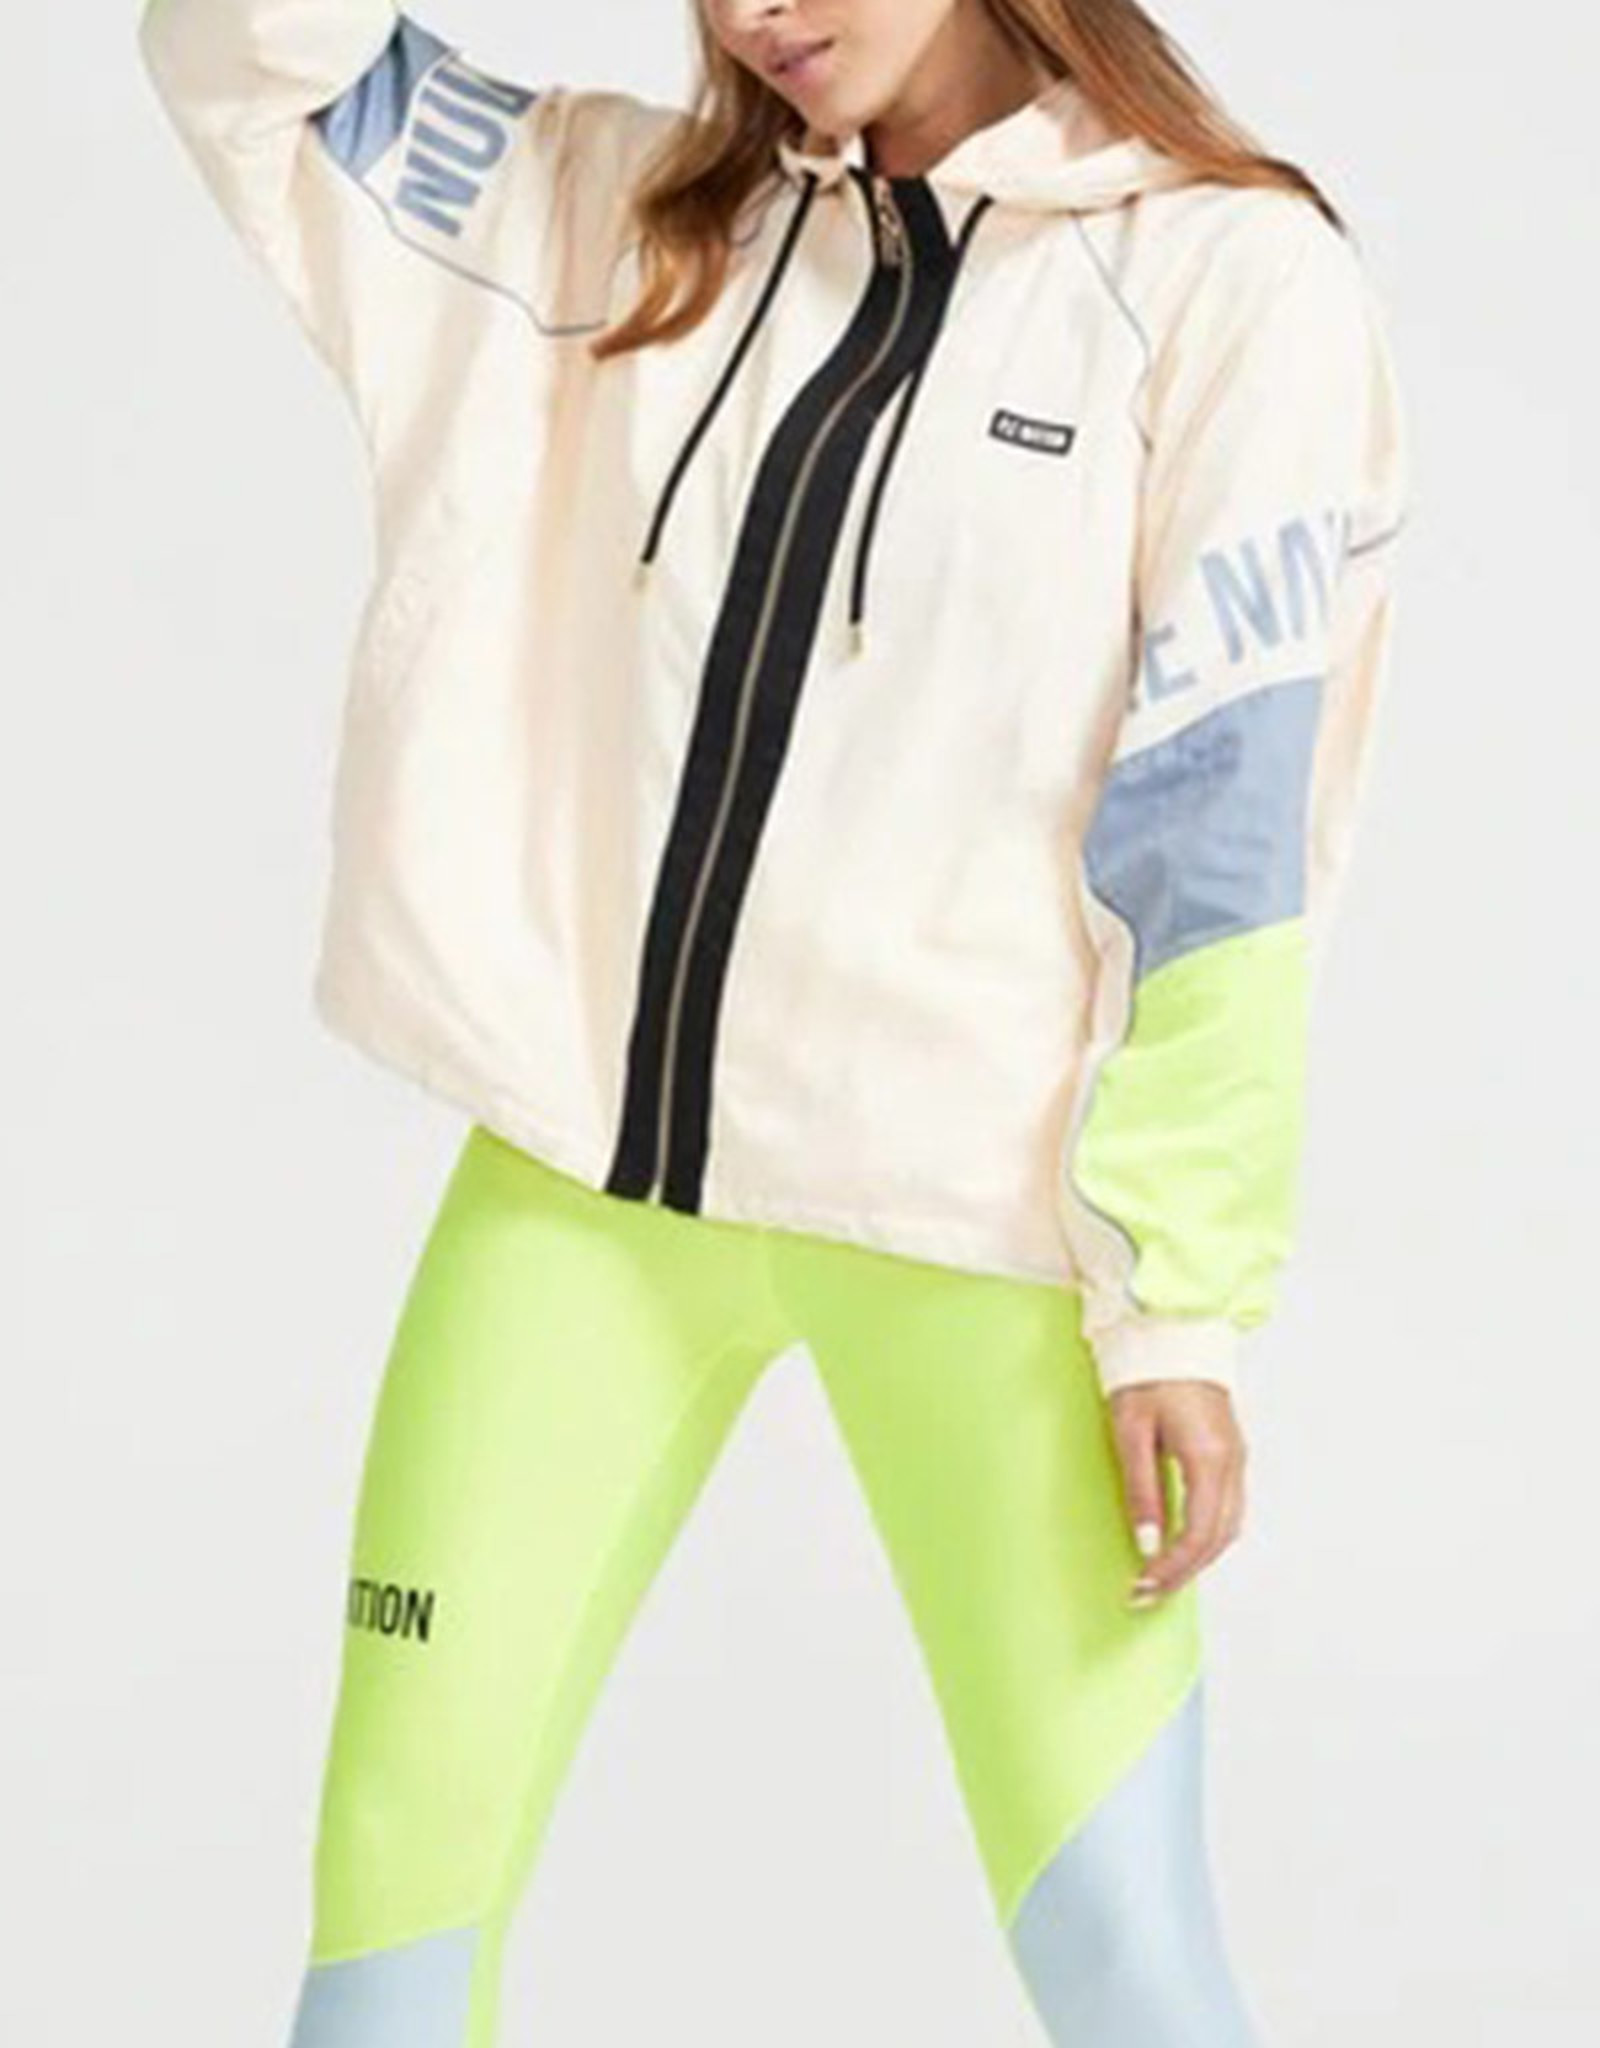 PE NATION FIRST POSITION JACKET